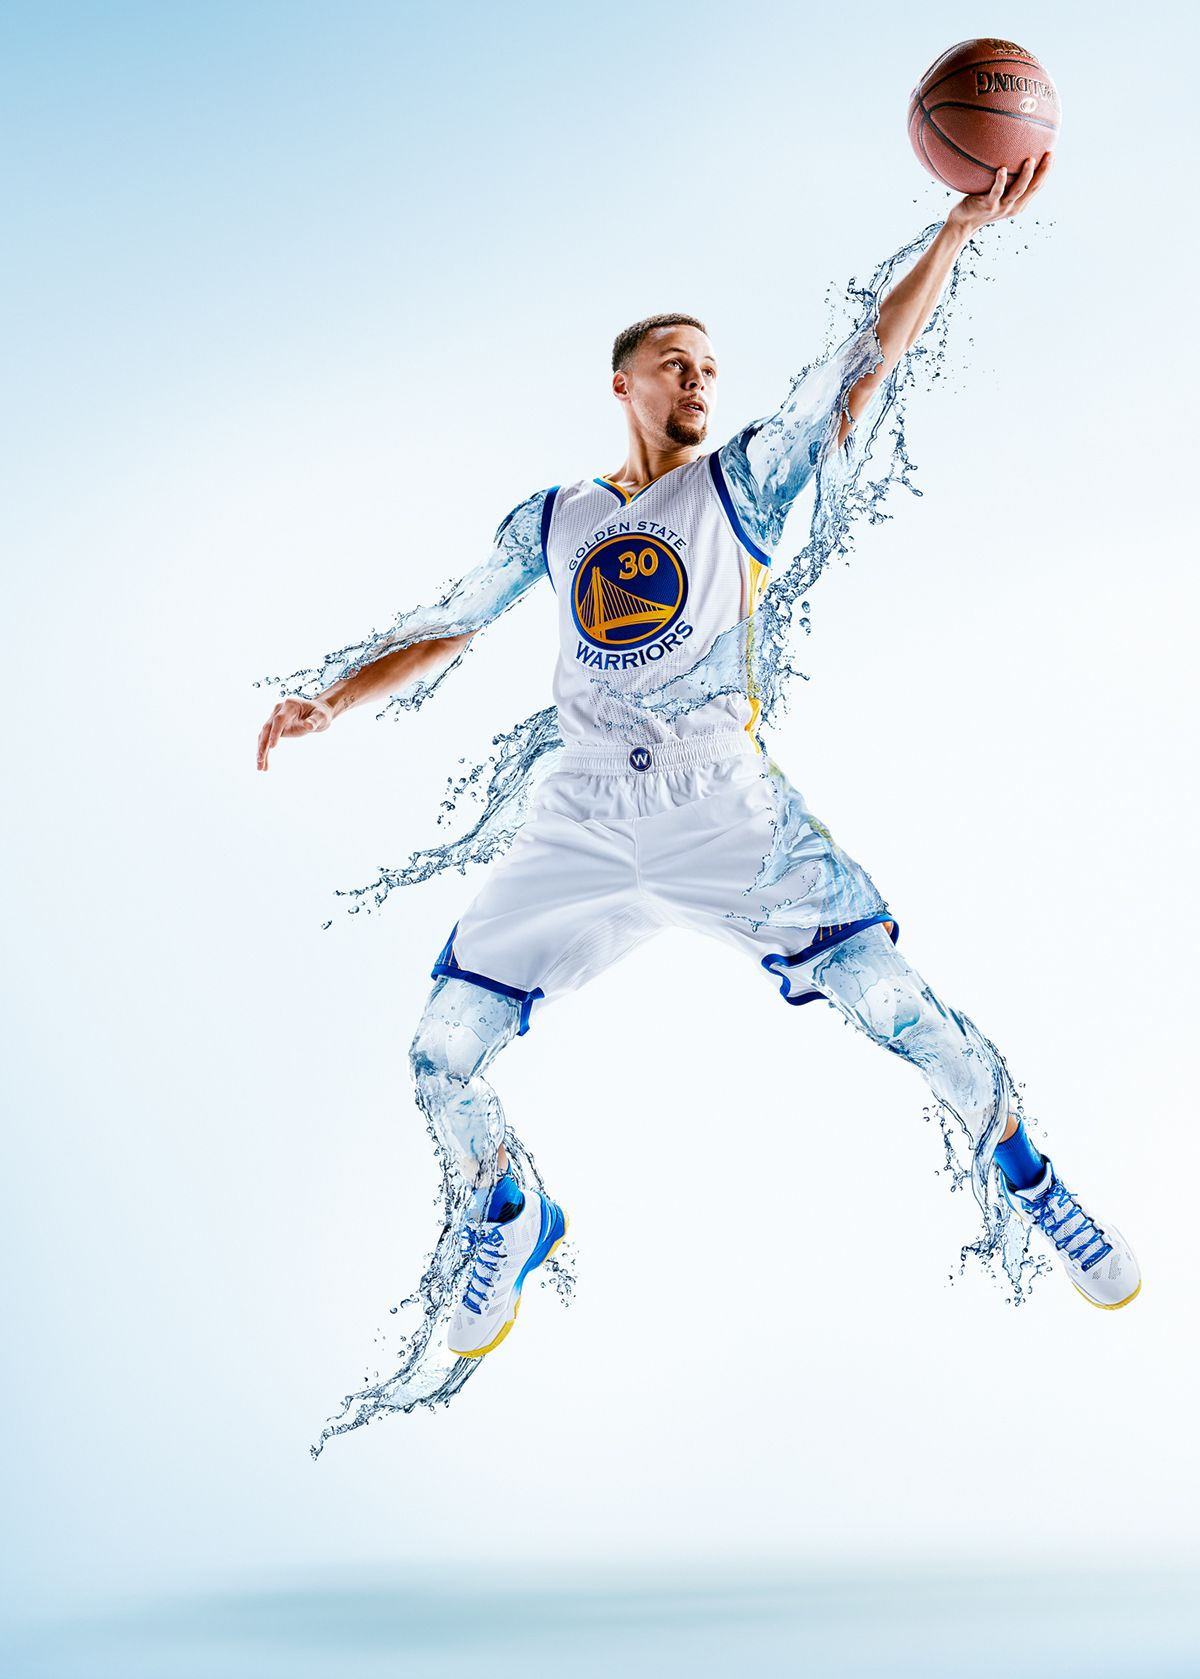 54f1969a1f8 Campaign images of NBA MVP Steph Curry for Brita water. Campaign speaks to  making every drop amazing. Your body is 60 percent water make every drop  you ...